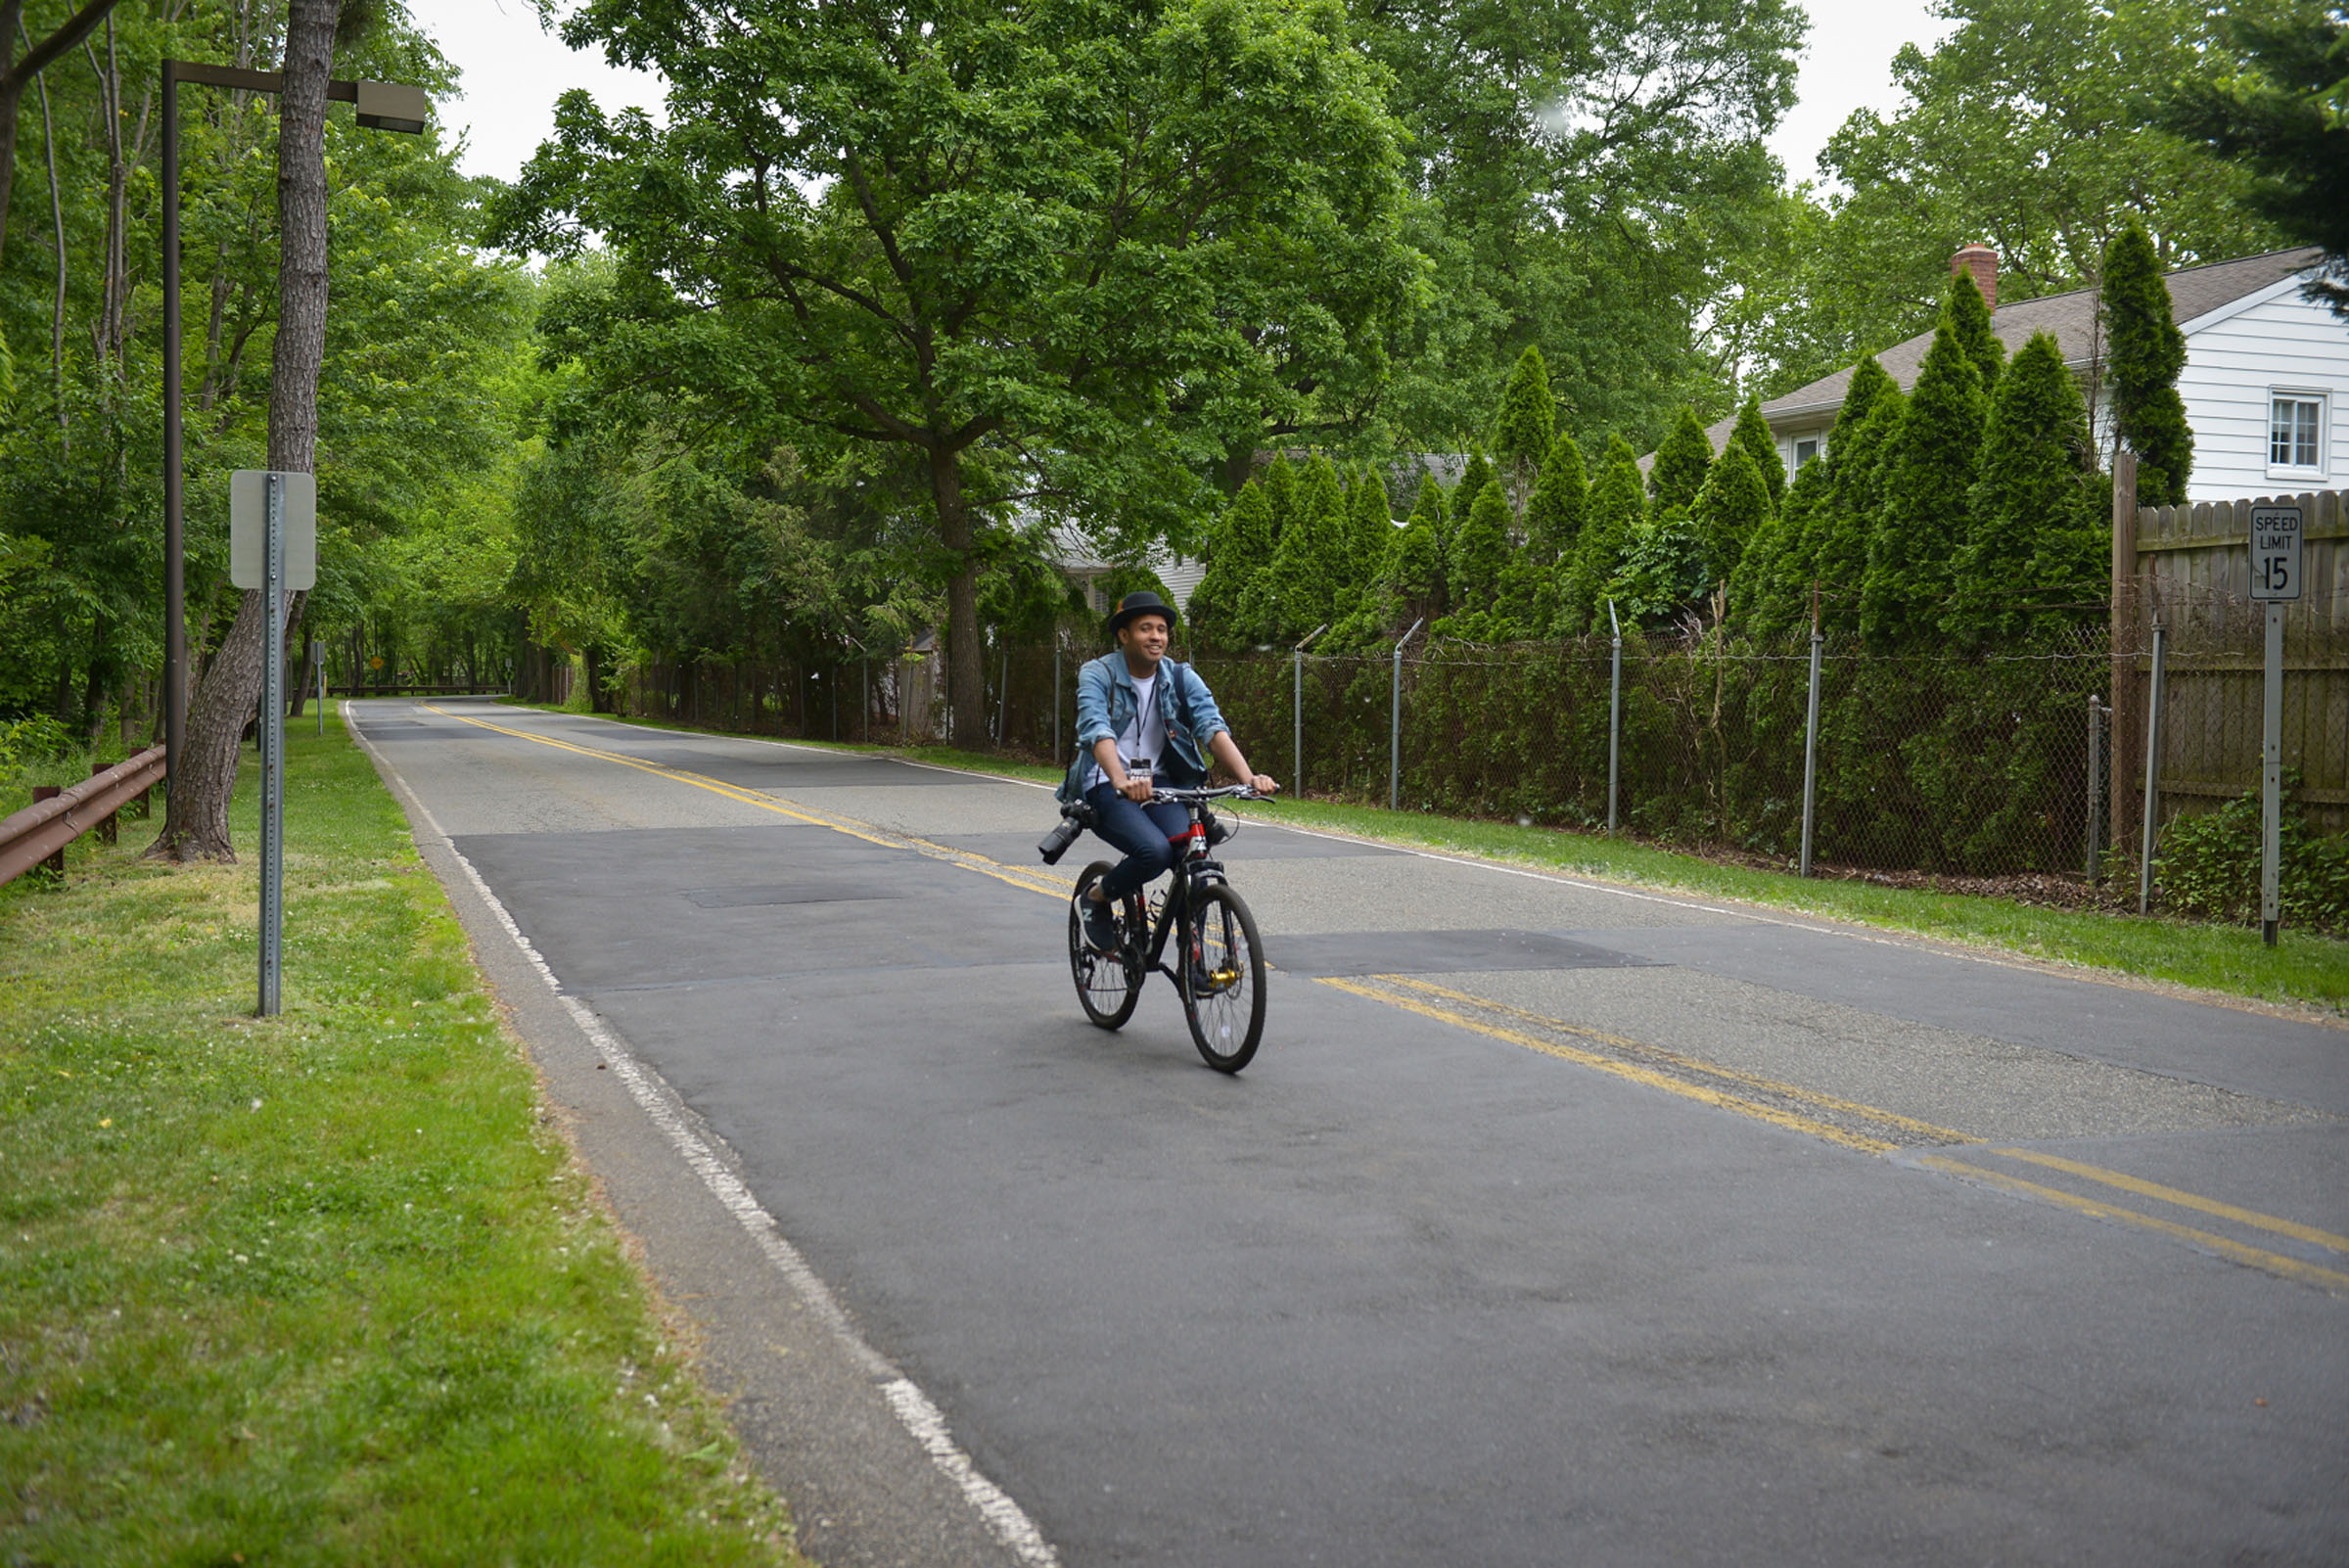 2017-06-04 GTD4A Charity Bike Ride - BCC - Paramus NJ-2439.jpg